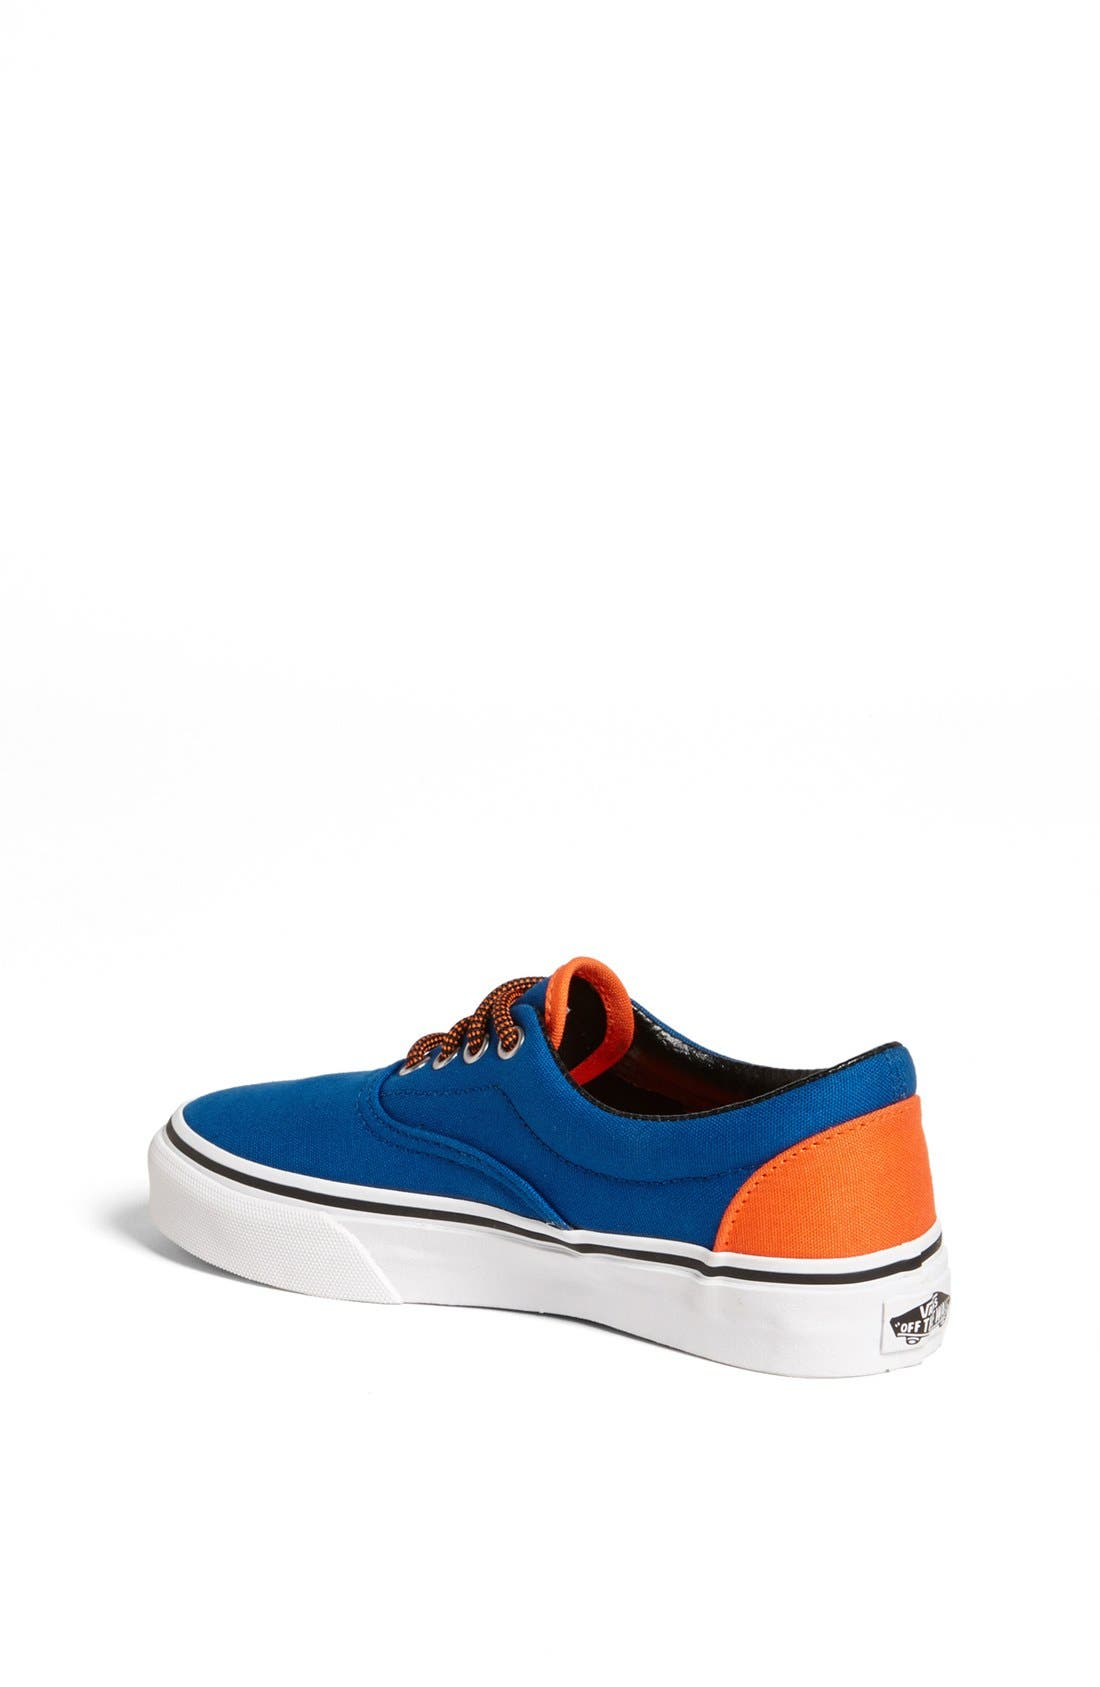 Alternate Image 2  - Vans 'Era - Heel Pop' Sneaker (Toddler, Little Kid & Big Kid)